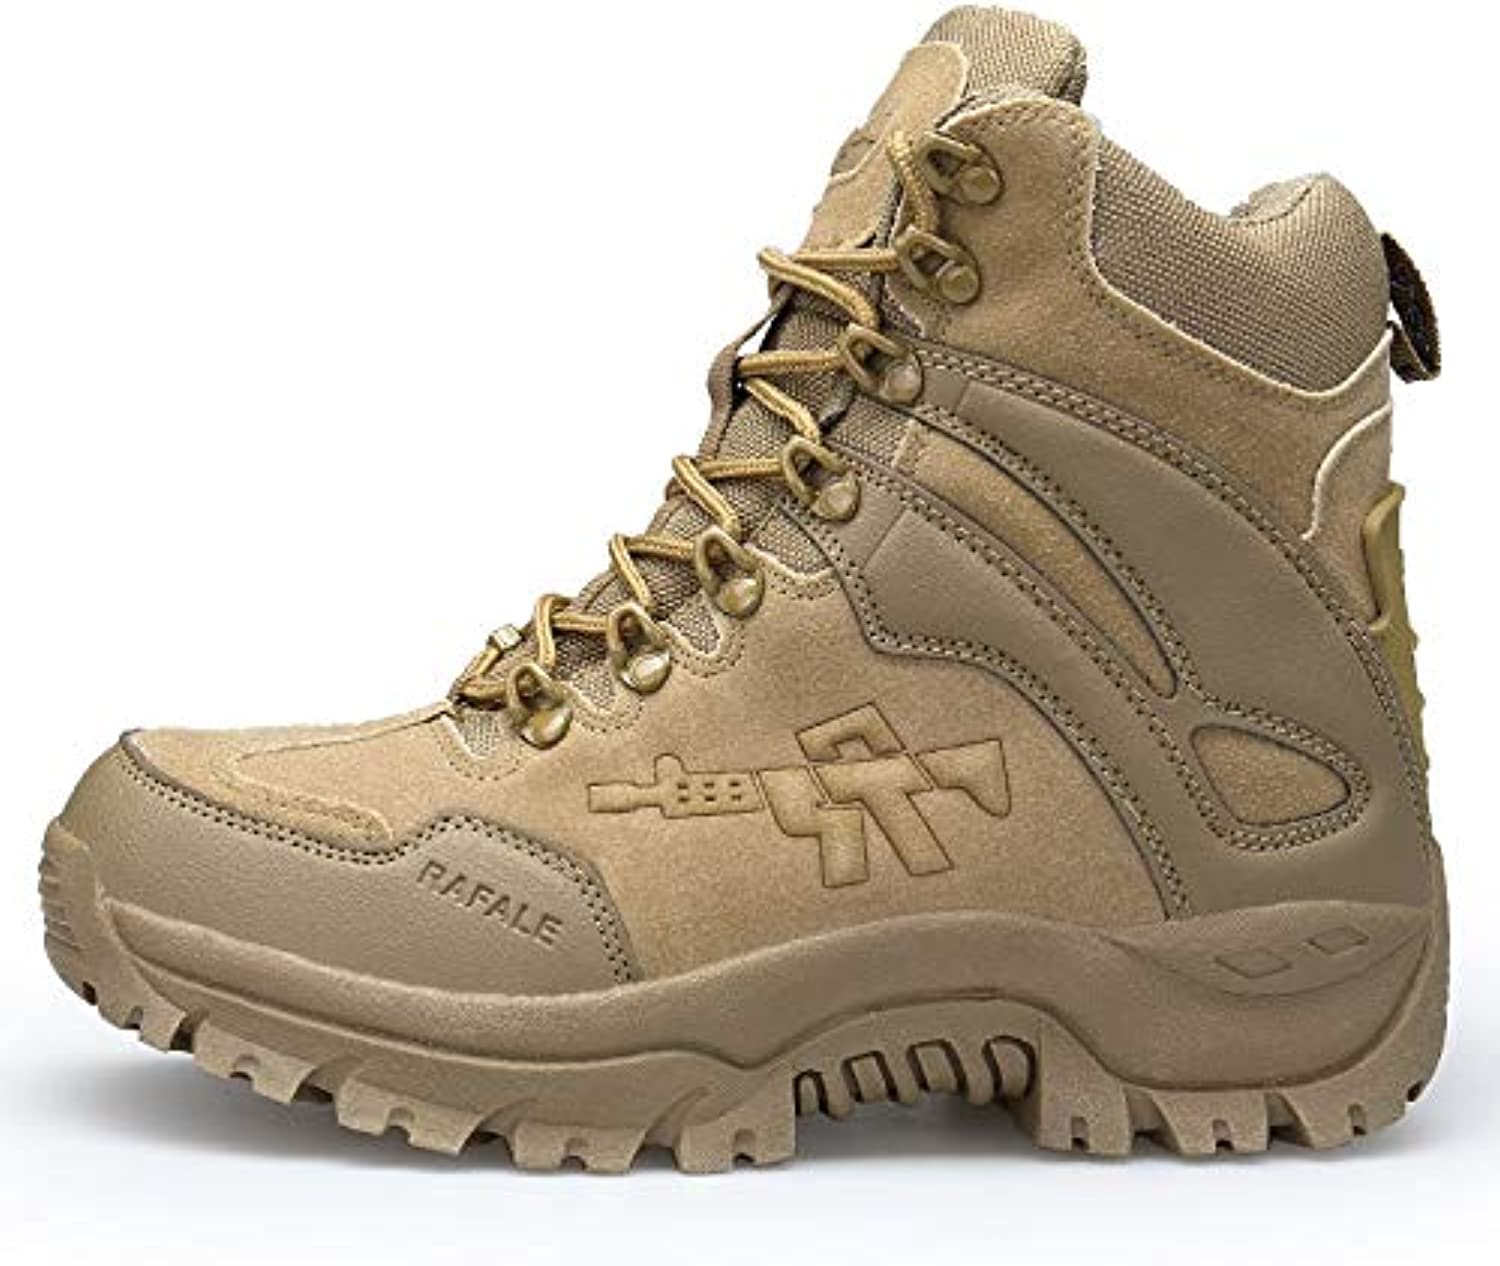 HCBYJ shoes Outdoor hiking shoes men's shoes breathable non-slip walking shoes tactical tooling